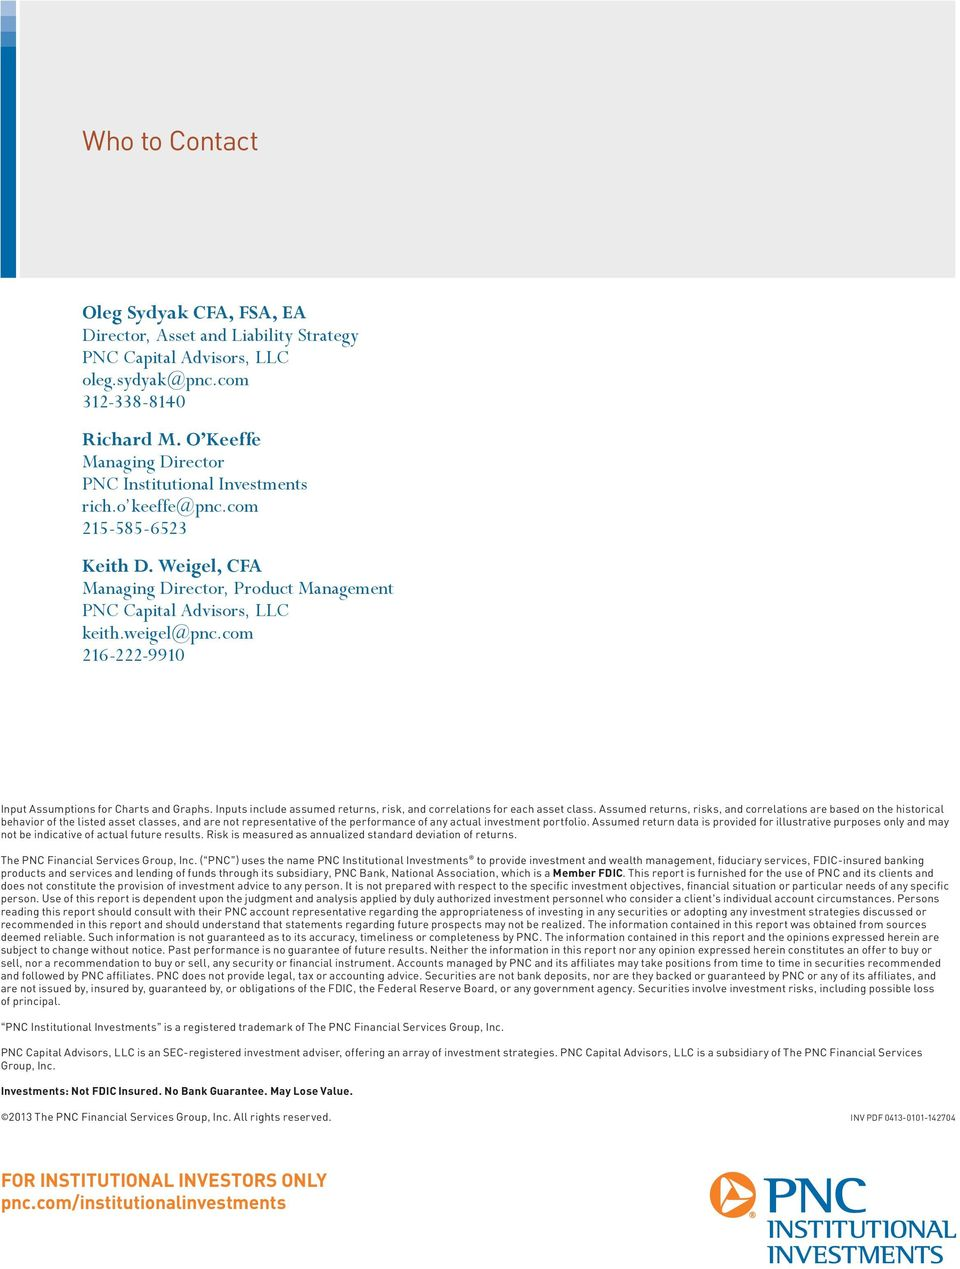 Cash Flow Analytics for Endowments and Foundations - PDF